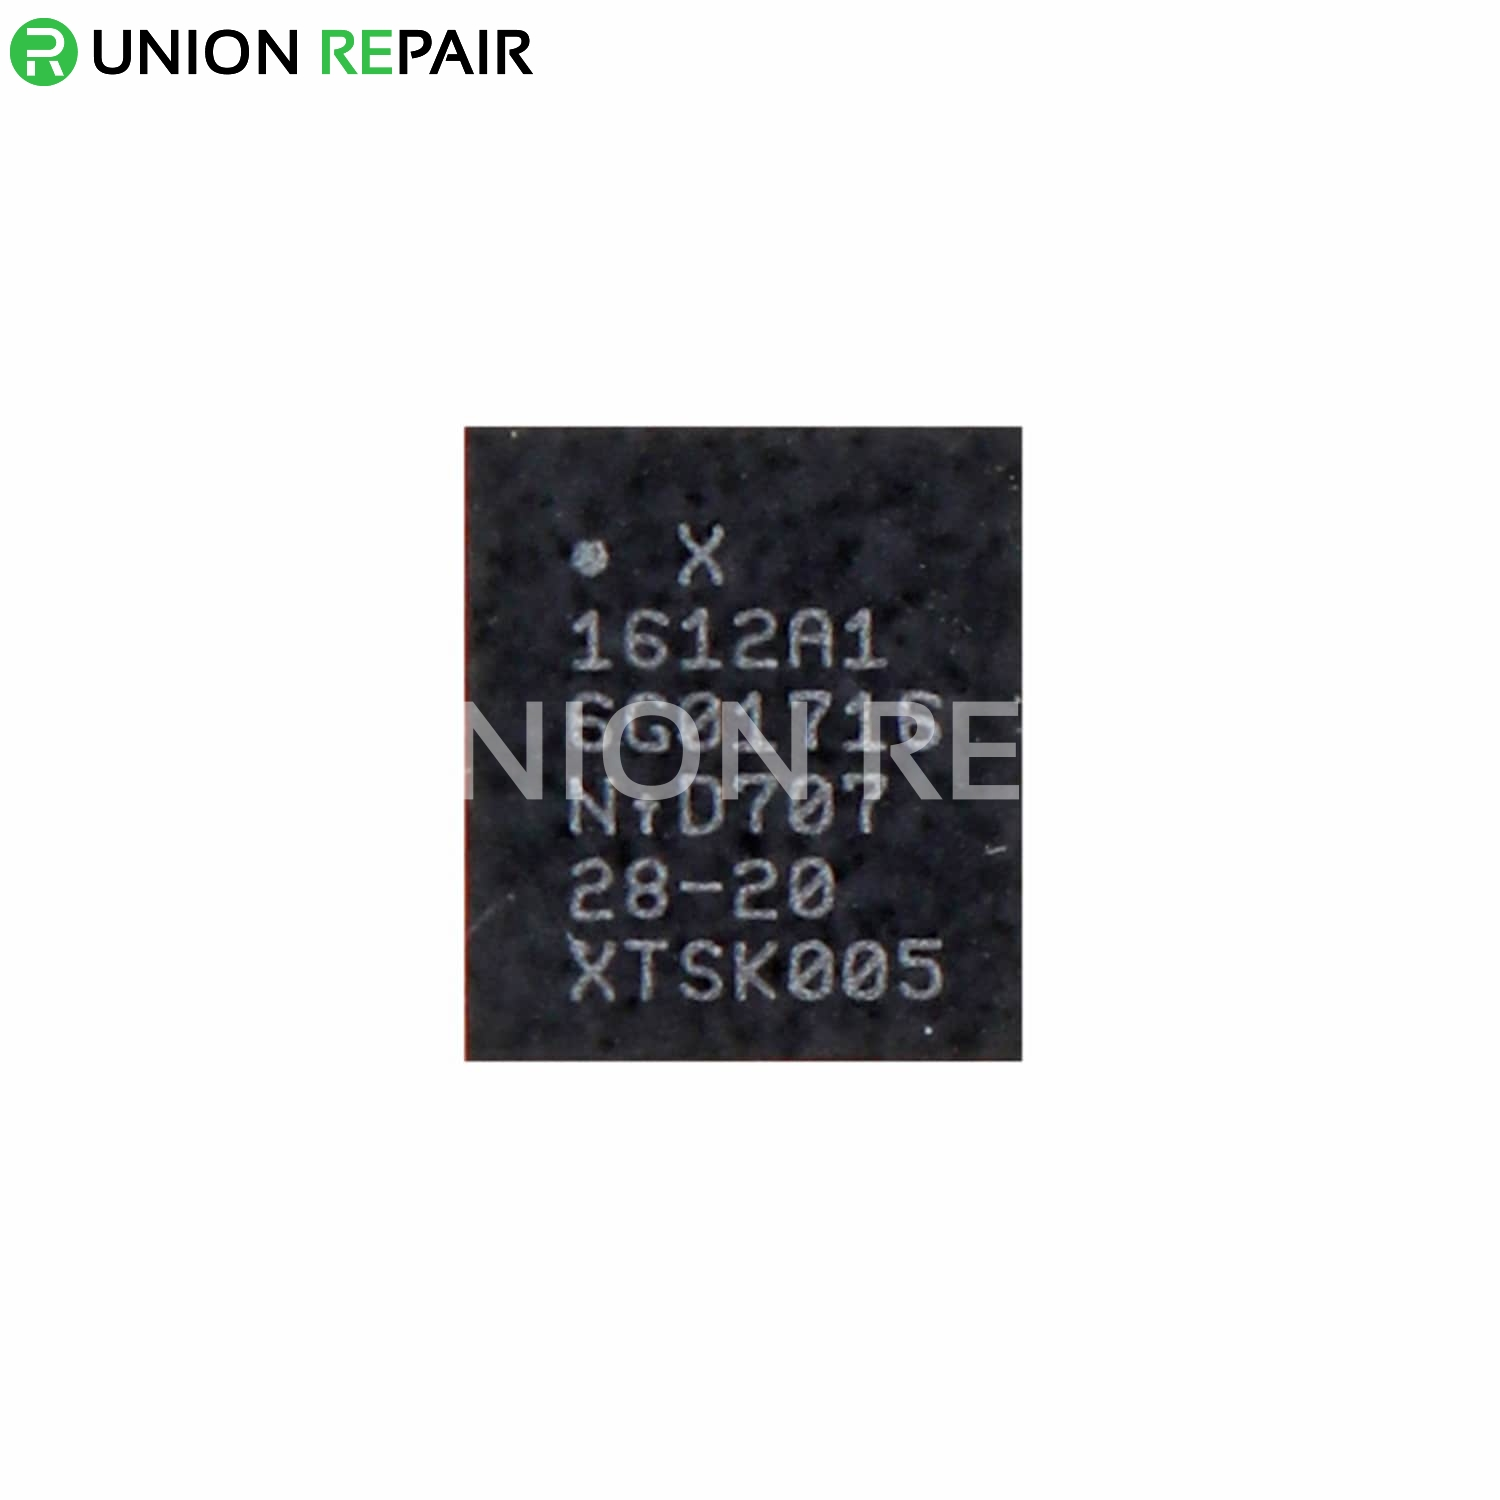 Replacement for iPhone X USB Charging IC #1612A1